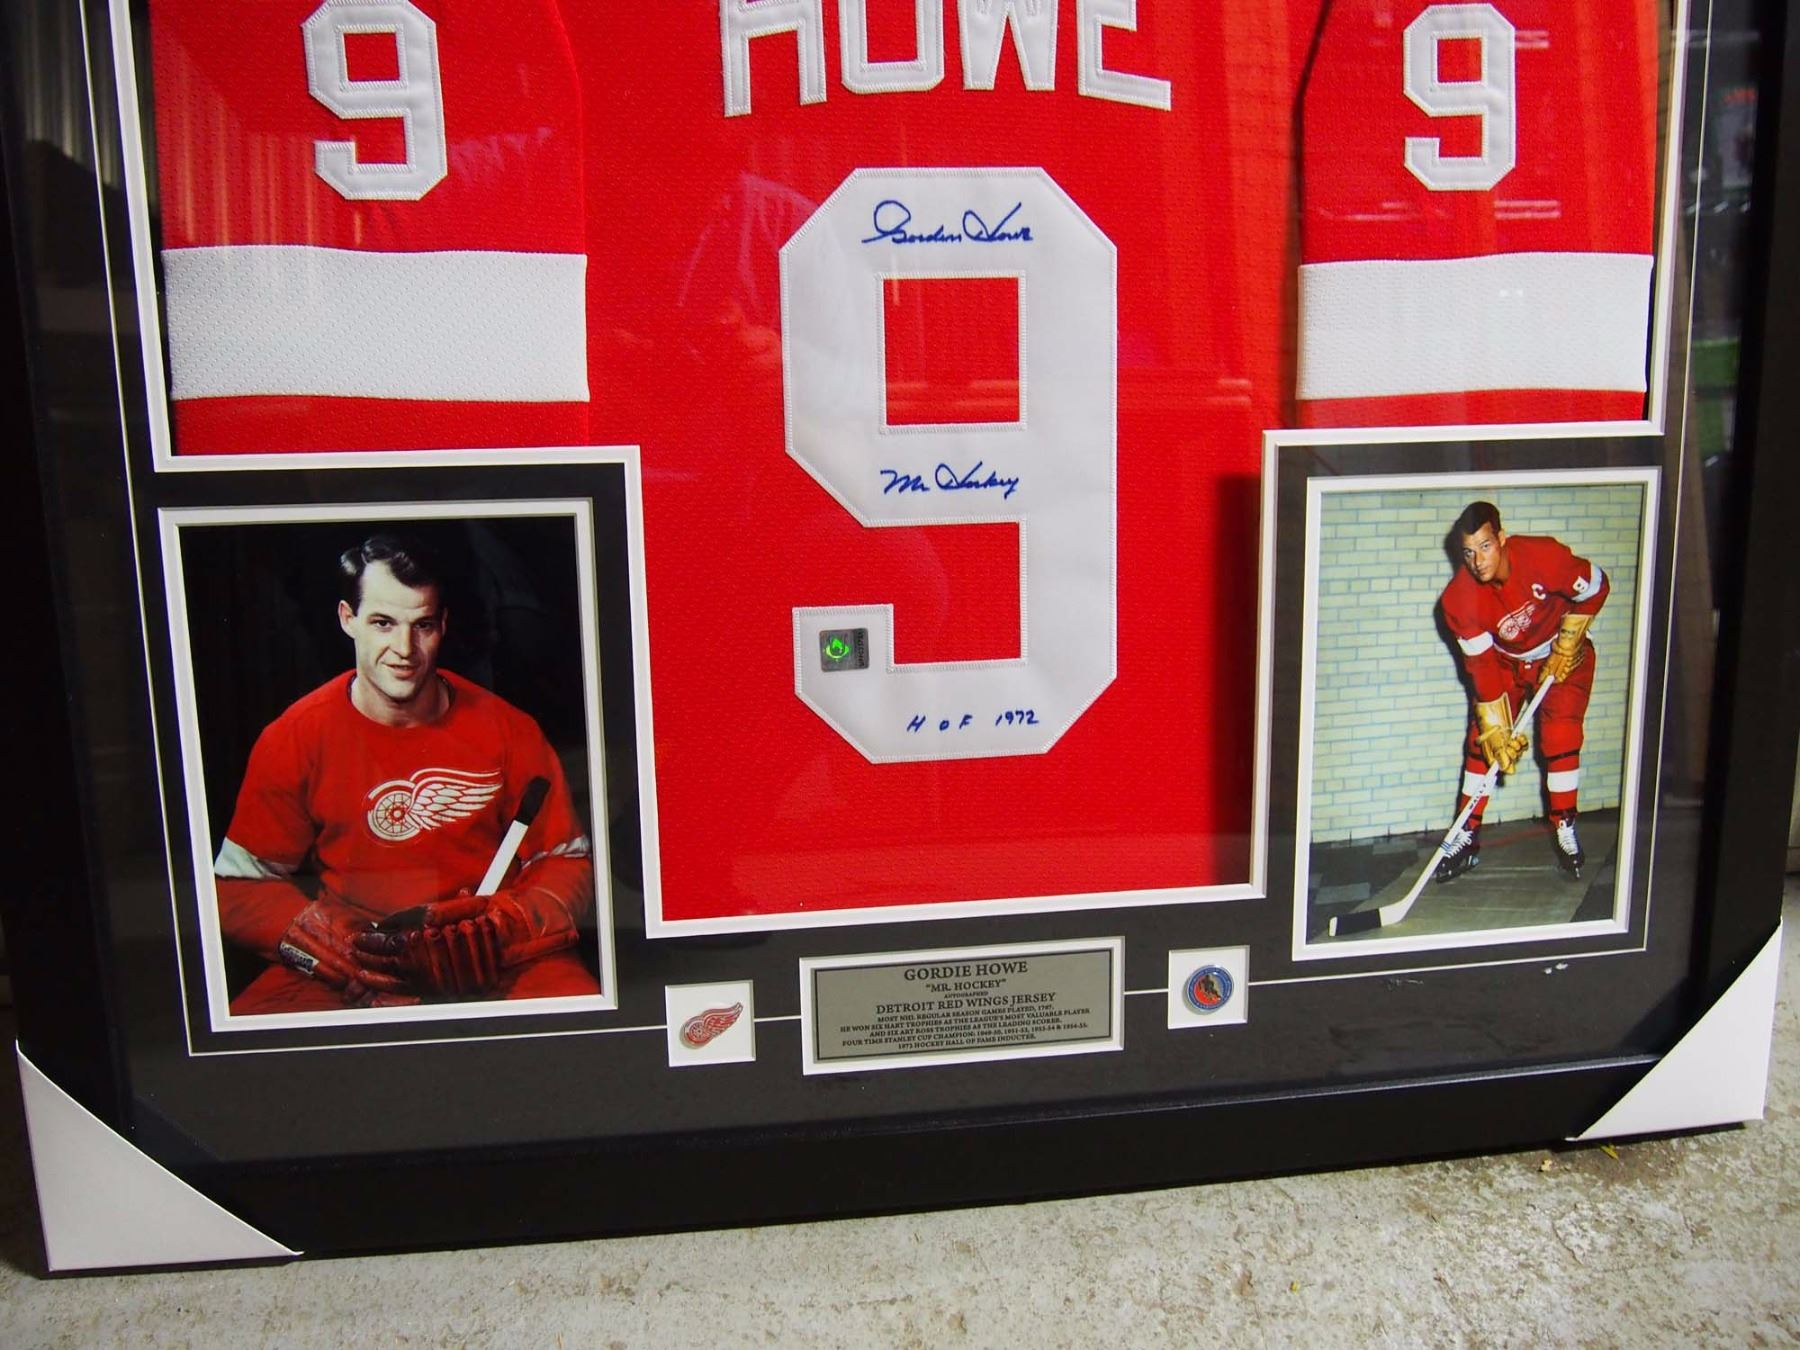 a7eb8f8d3a6 ... image 2 gordie howe mr hockey autographed detroit red wings framed  jersey